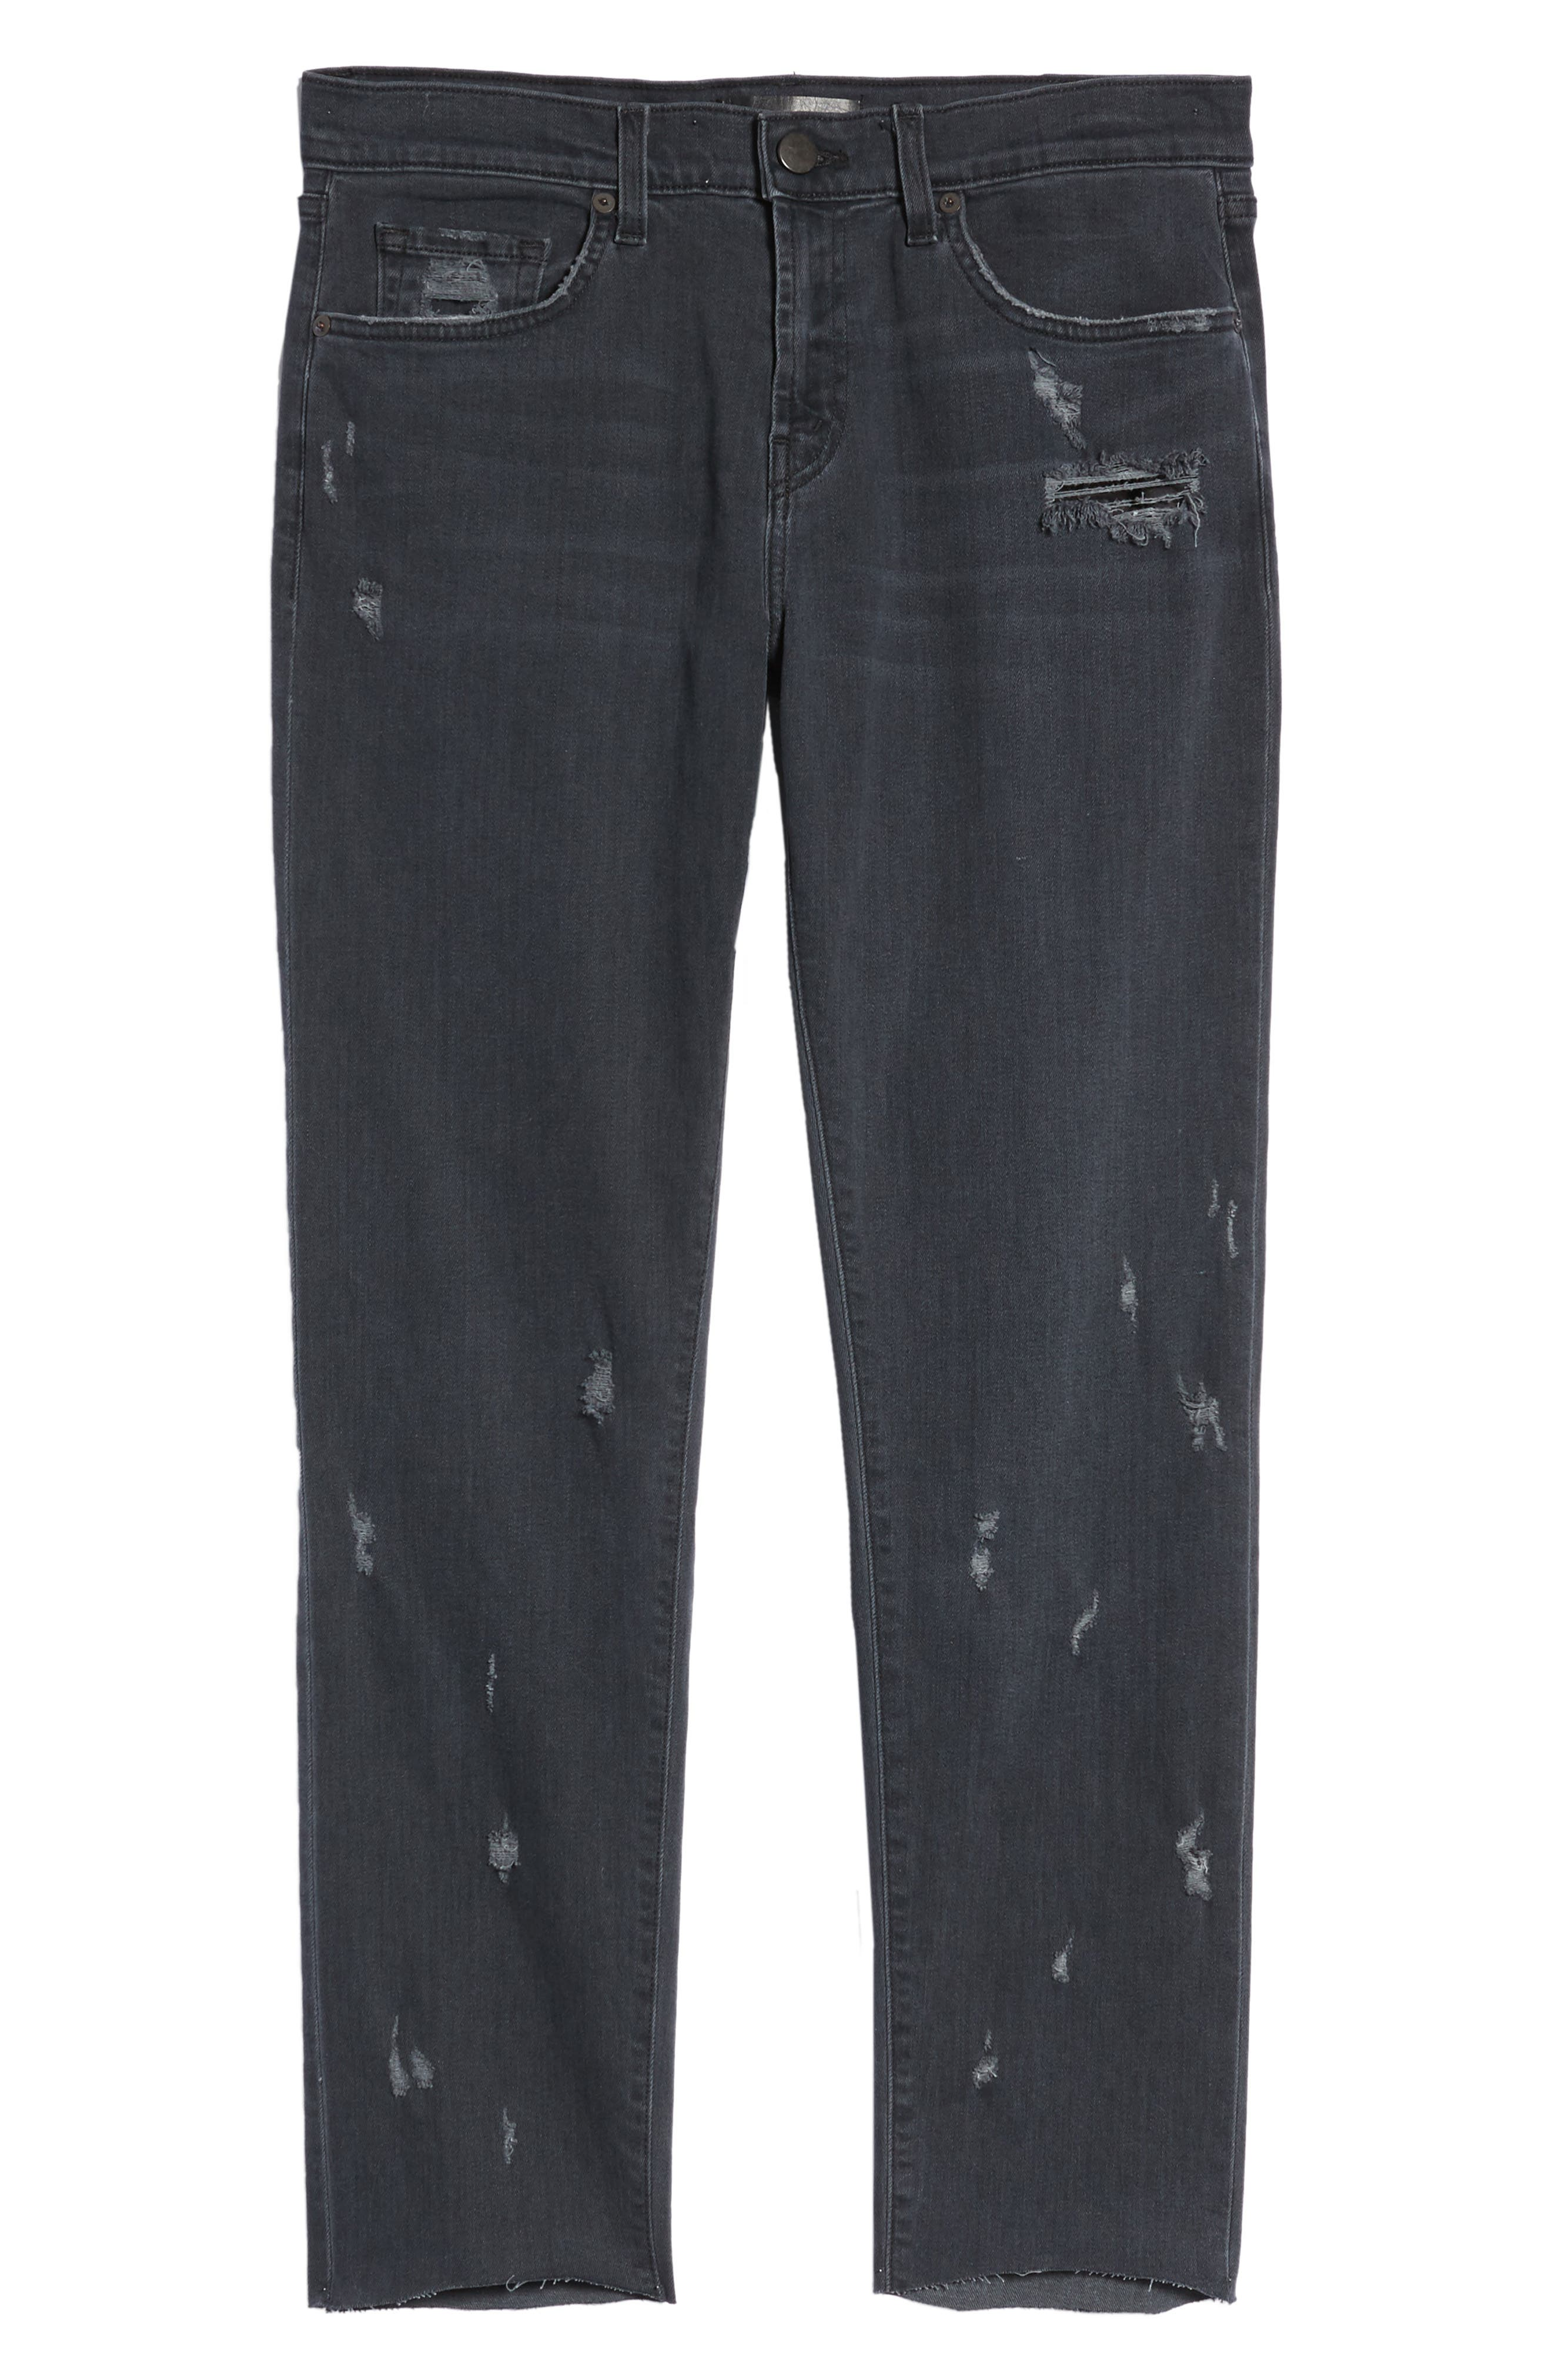 Tyler Slim Fit Jeans,                             Alternate thumbnail 6, color,                             Glauconite